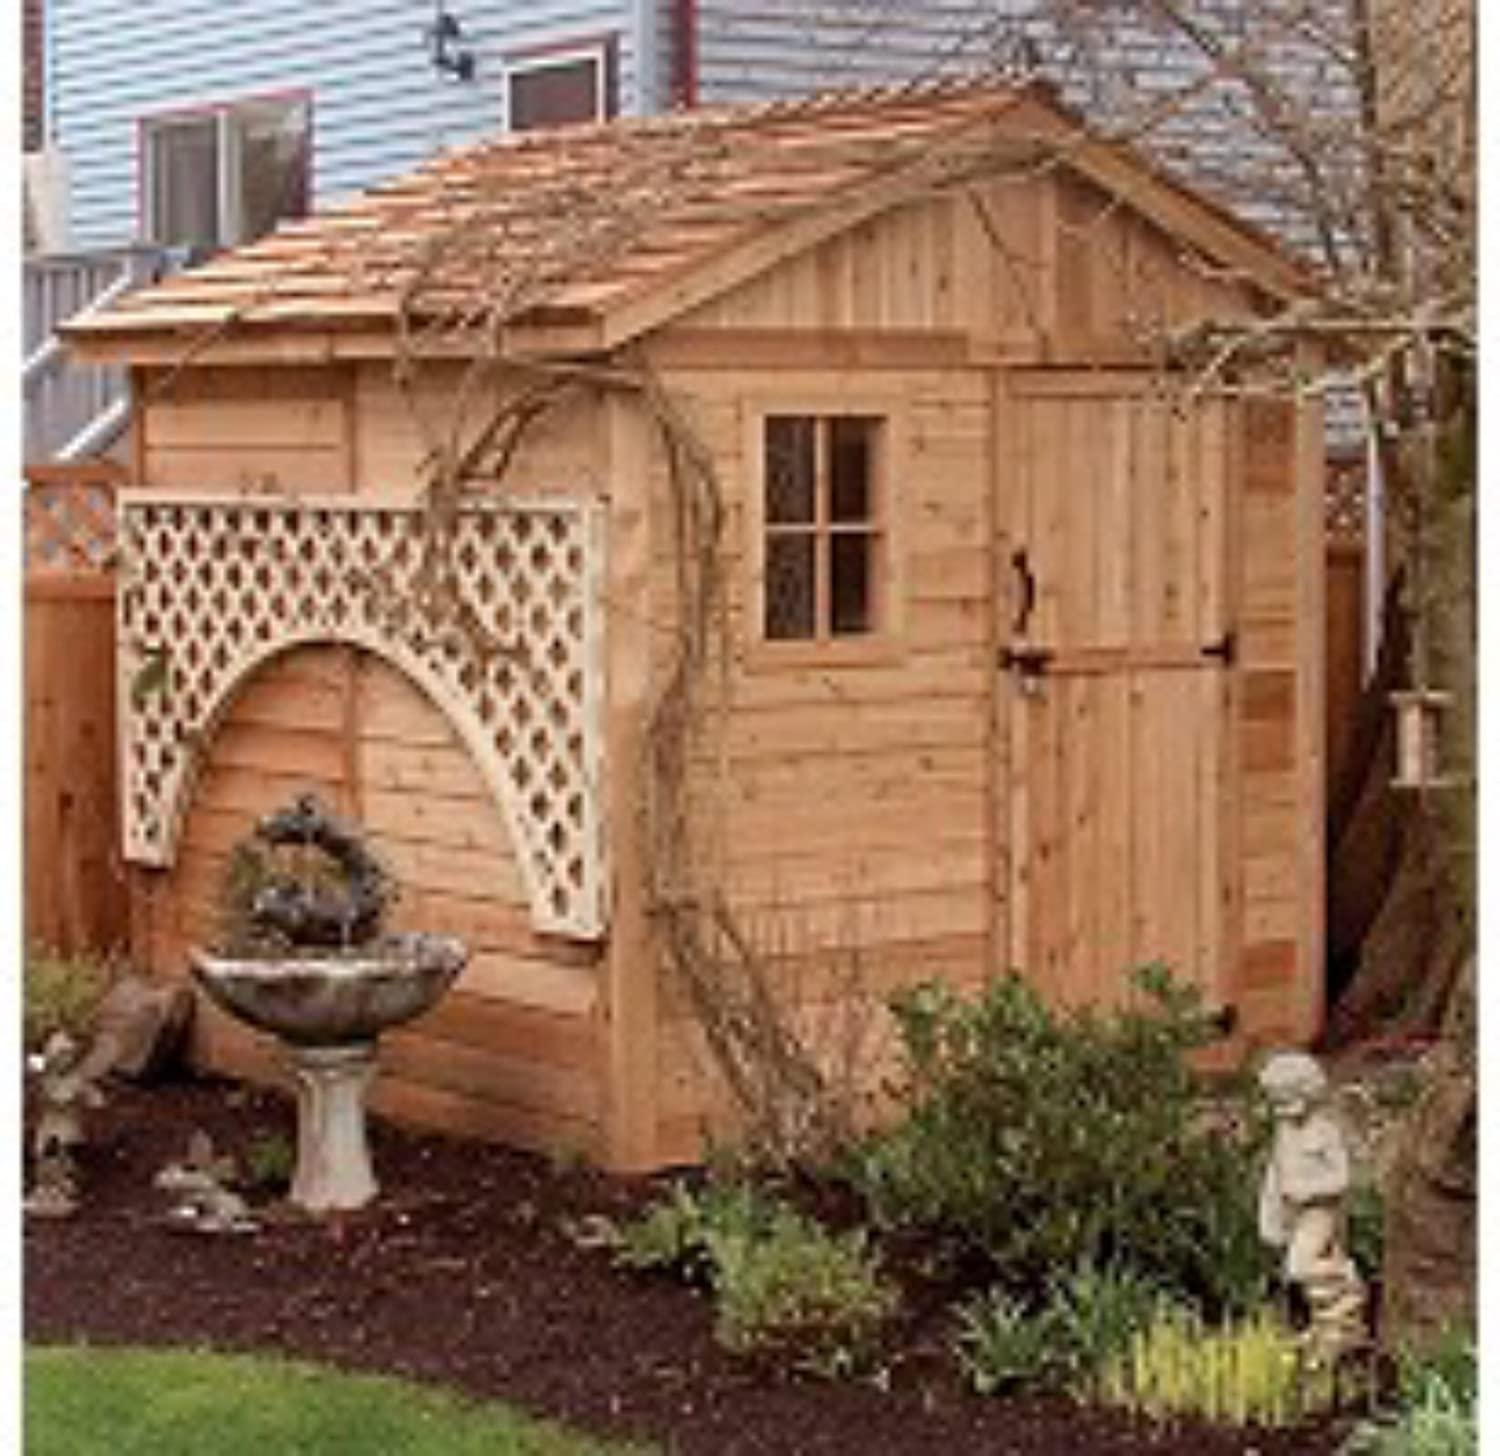 Amazon.com: Wood Outdoor Storage Shed - Great Little Shed to ...